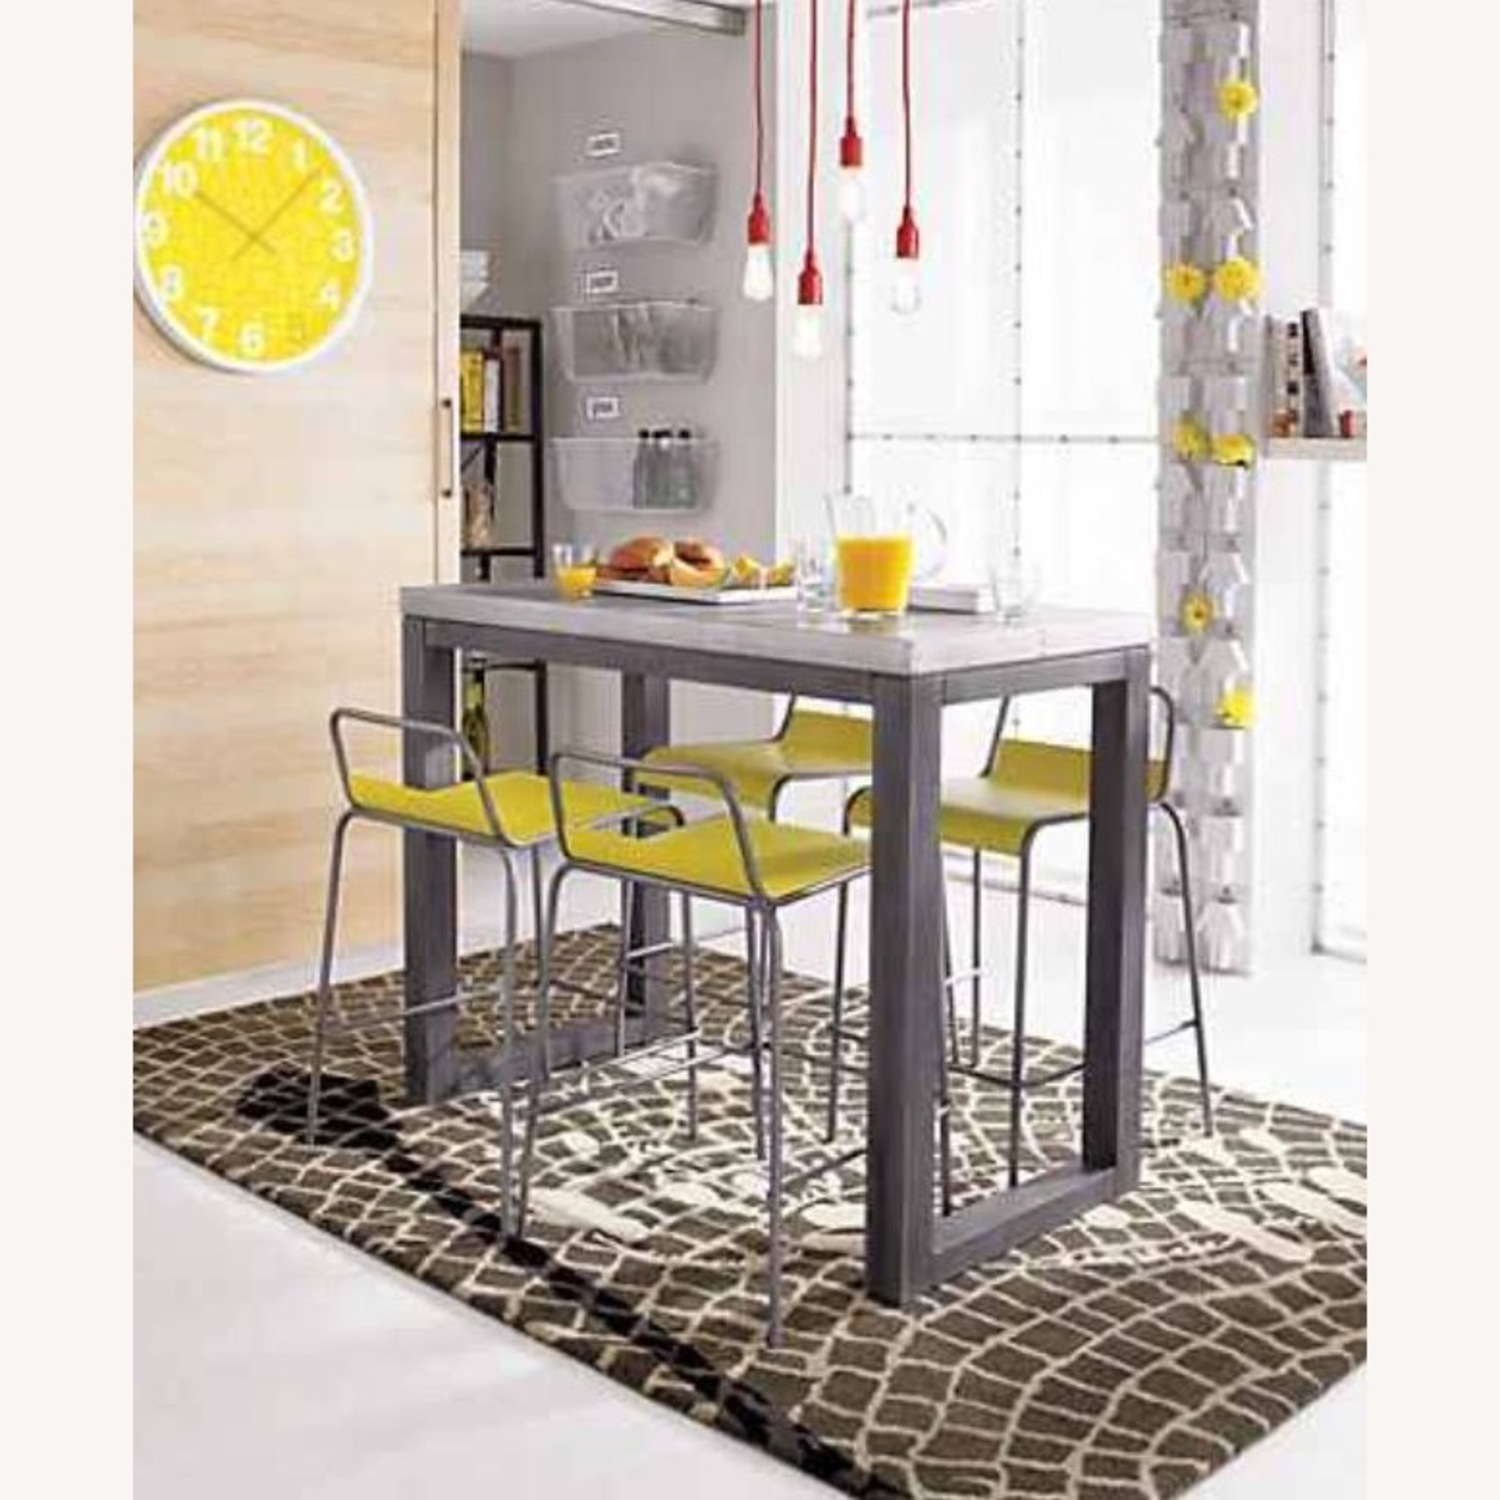 CB2 Industrial High Top Dining Table - image-3